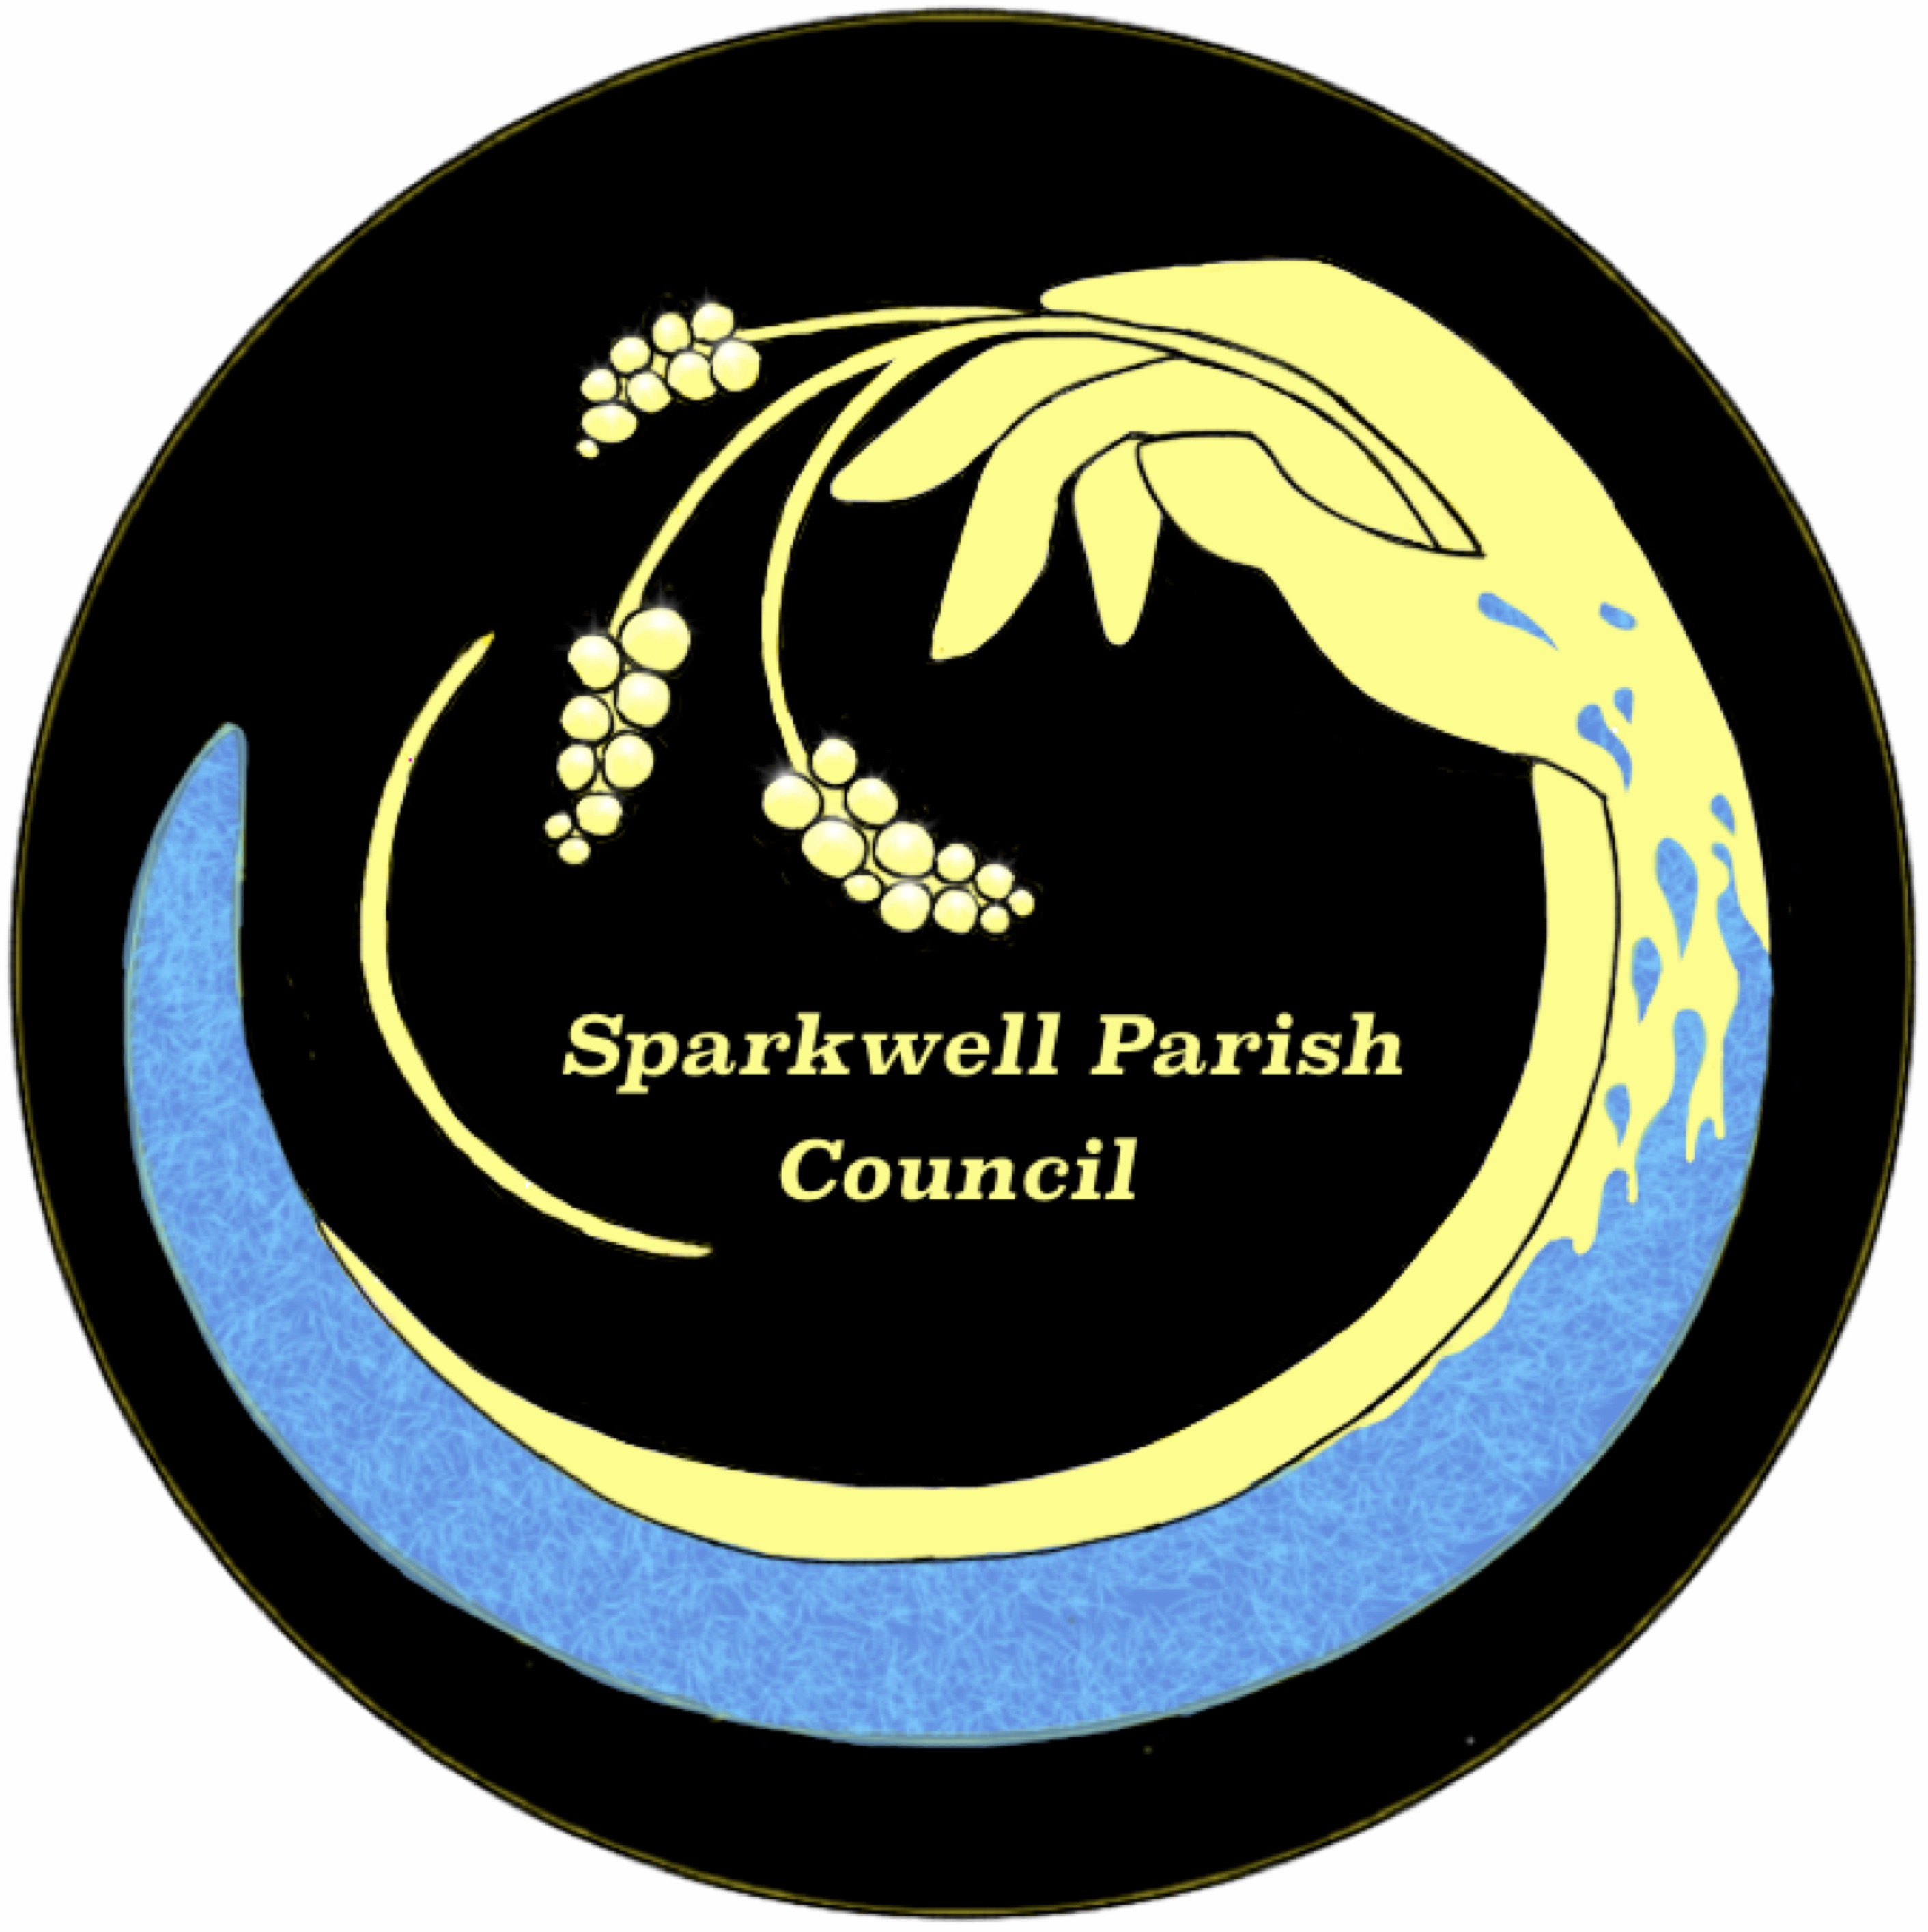 Sparkwell Parish Council